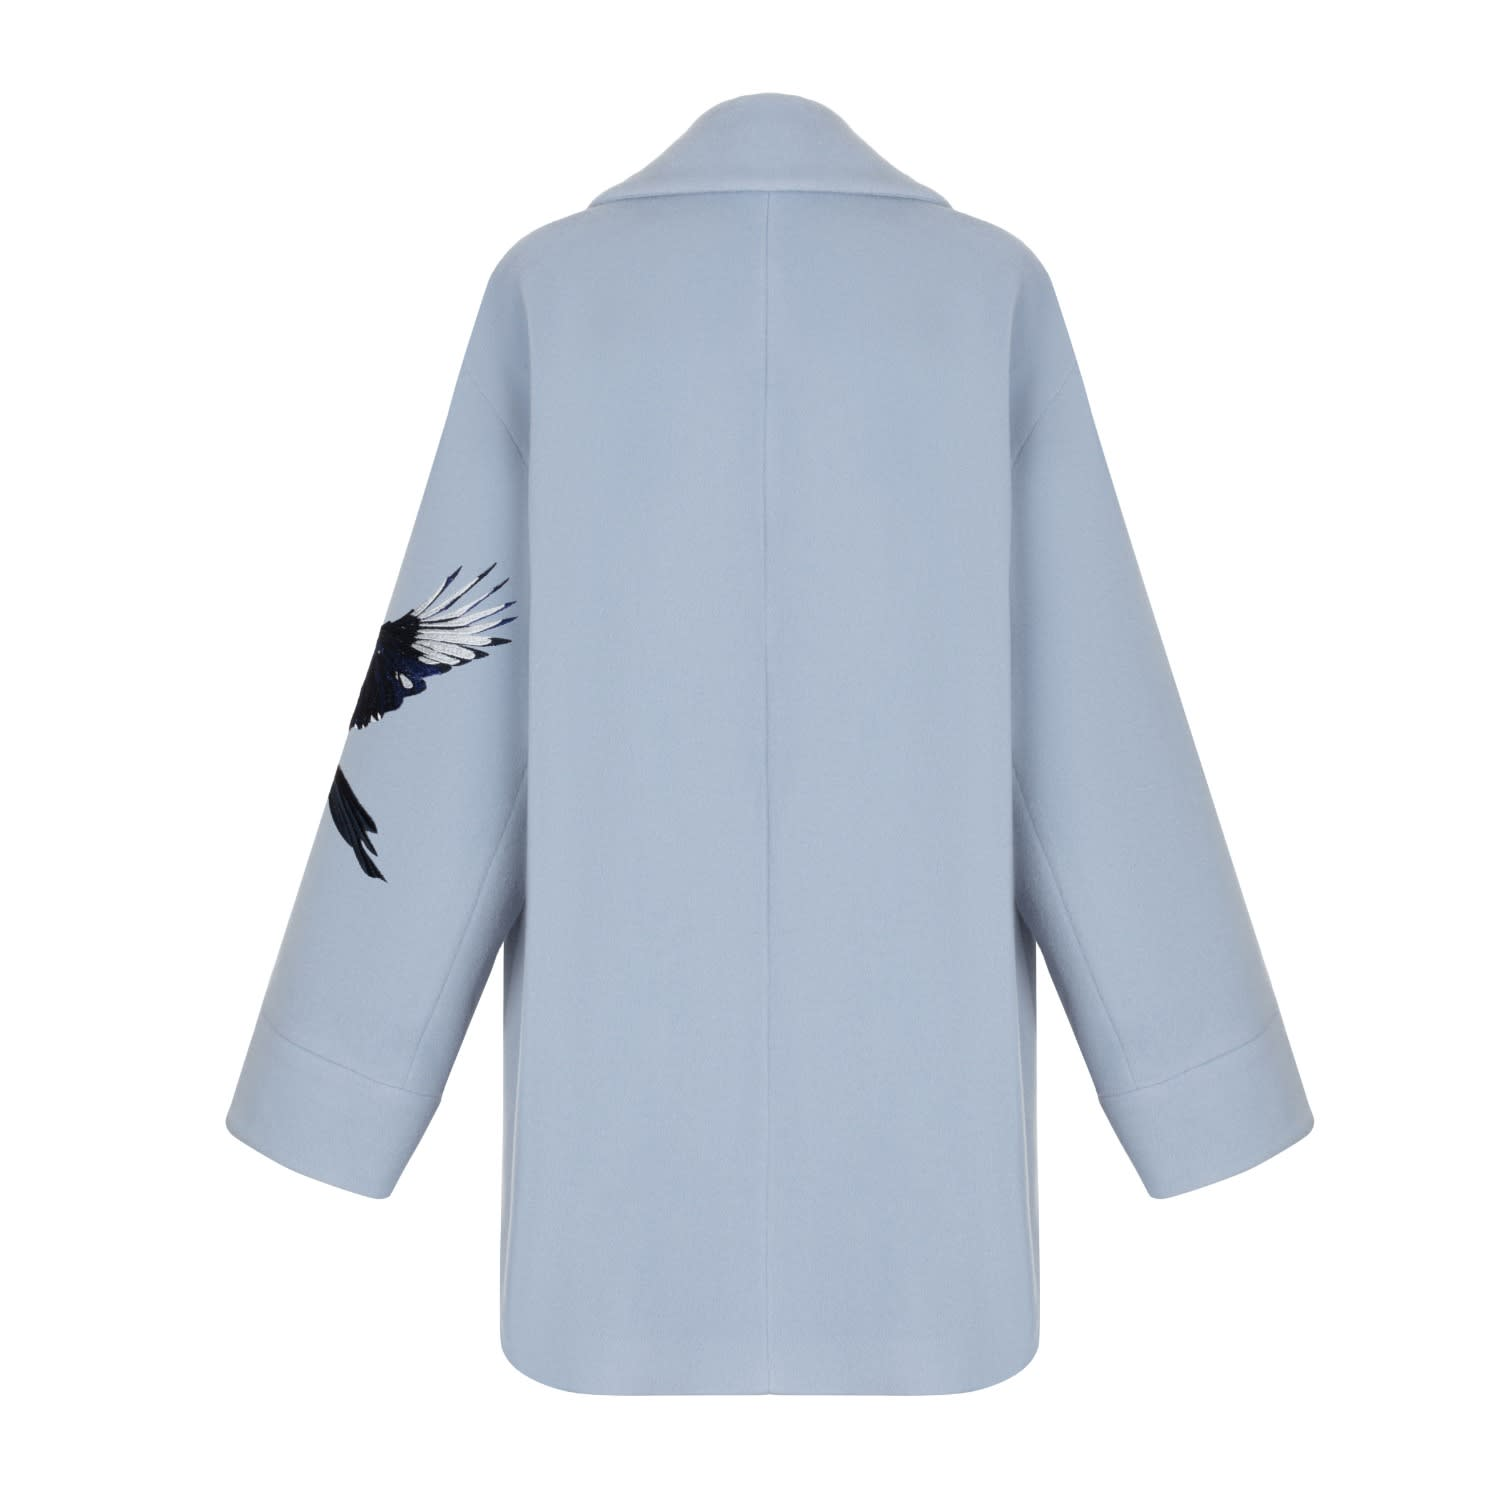 Light Blue Wool Coat With Print | KORSUN | Wolf & Badger